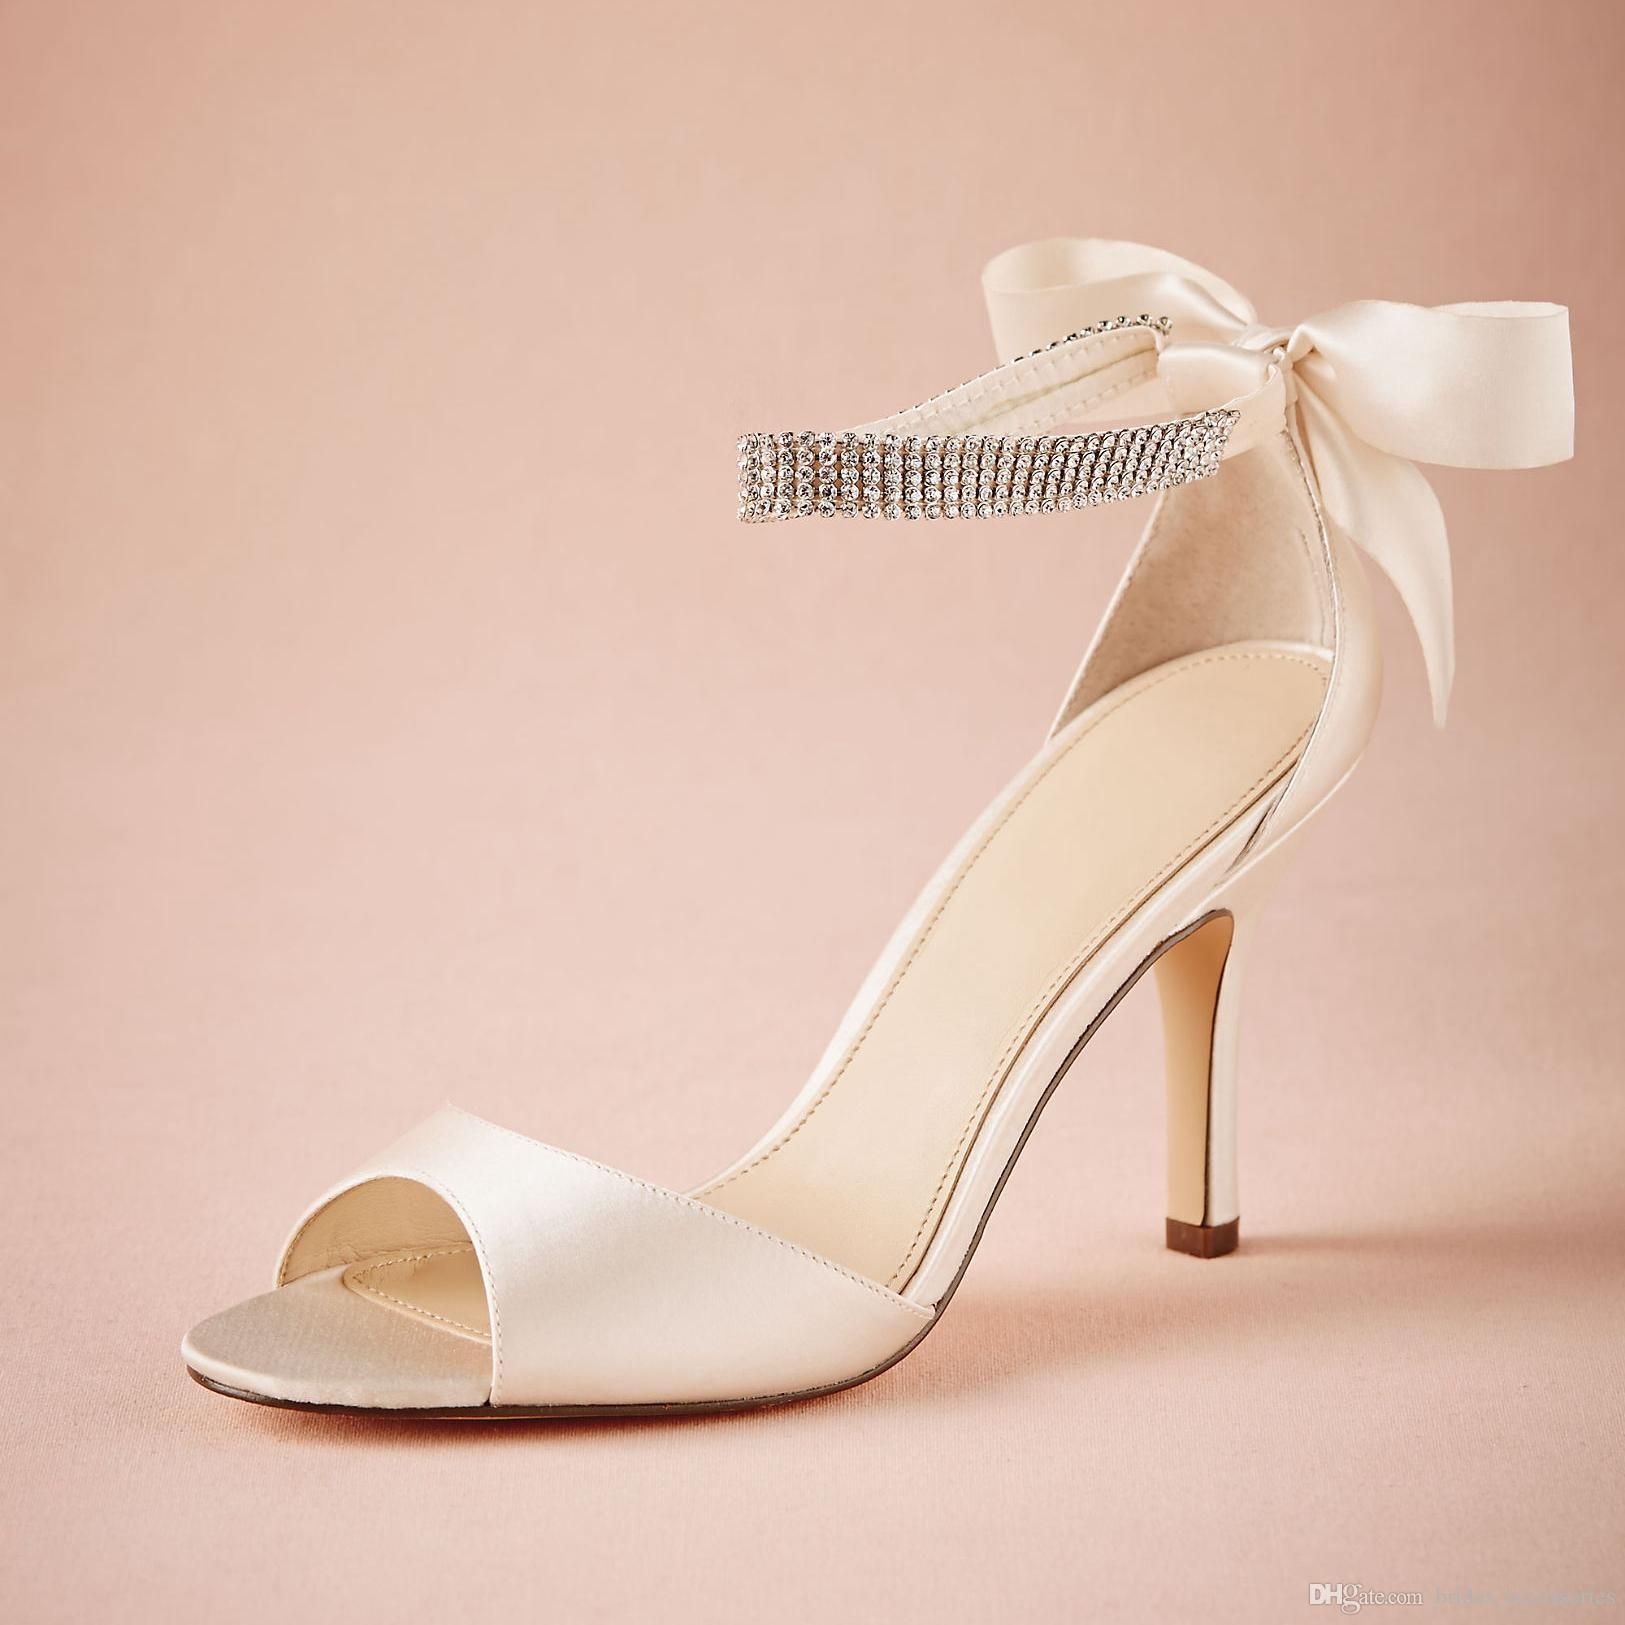 Ivory Satin Wedding Shoes Bowtie At Back Rhinestones Ankle Strap Sandal For  Women Bridal Accessories 3 Wrap Heel Crystal Bow Heels Bridal Shoes Nz  Bronze ... 836f68fbb0db